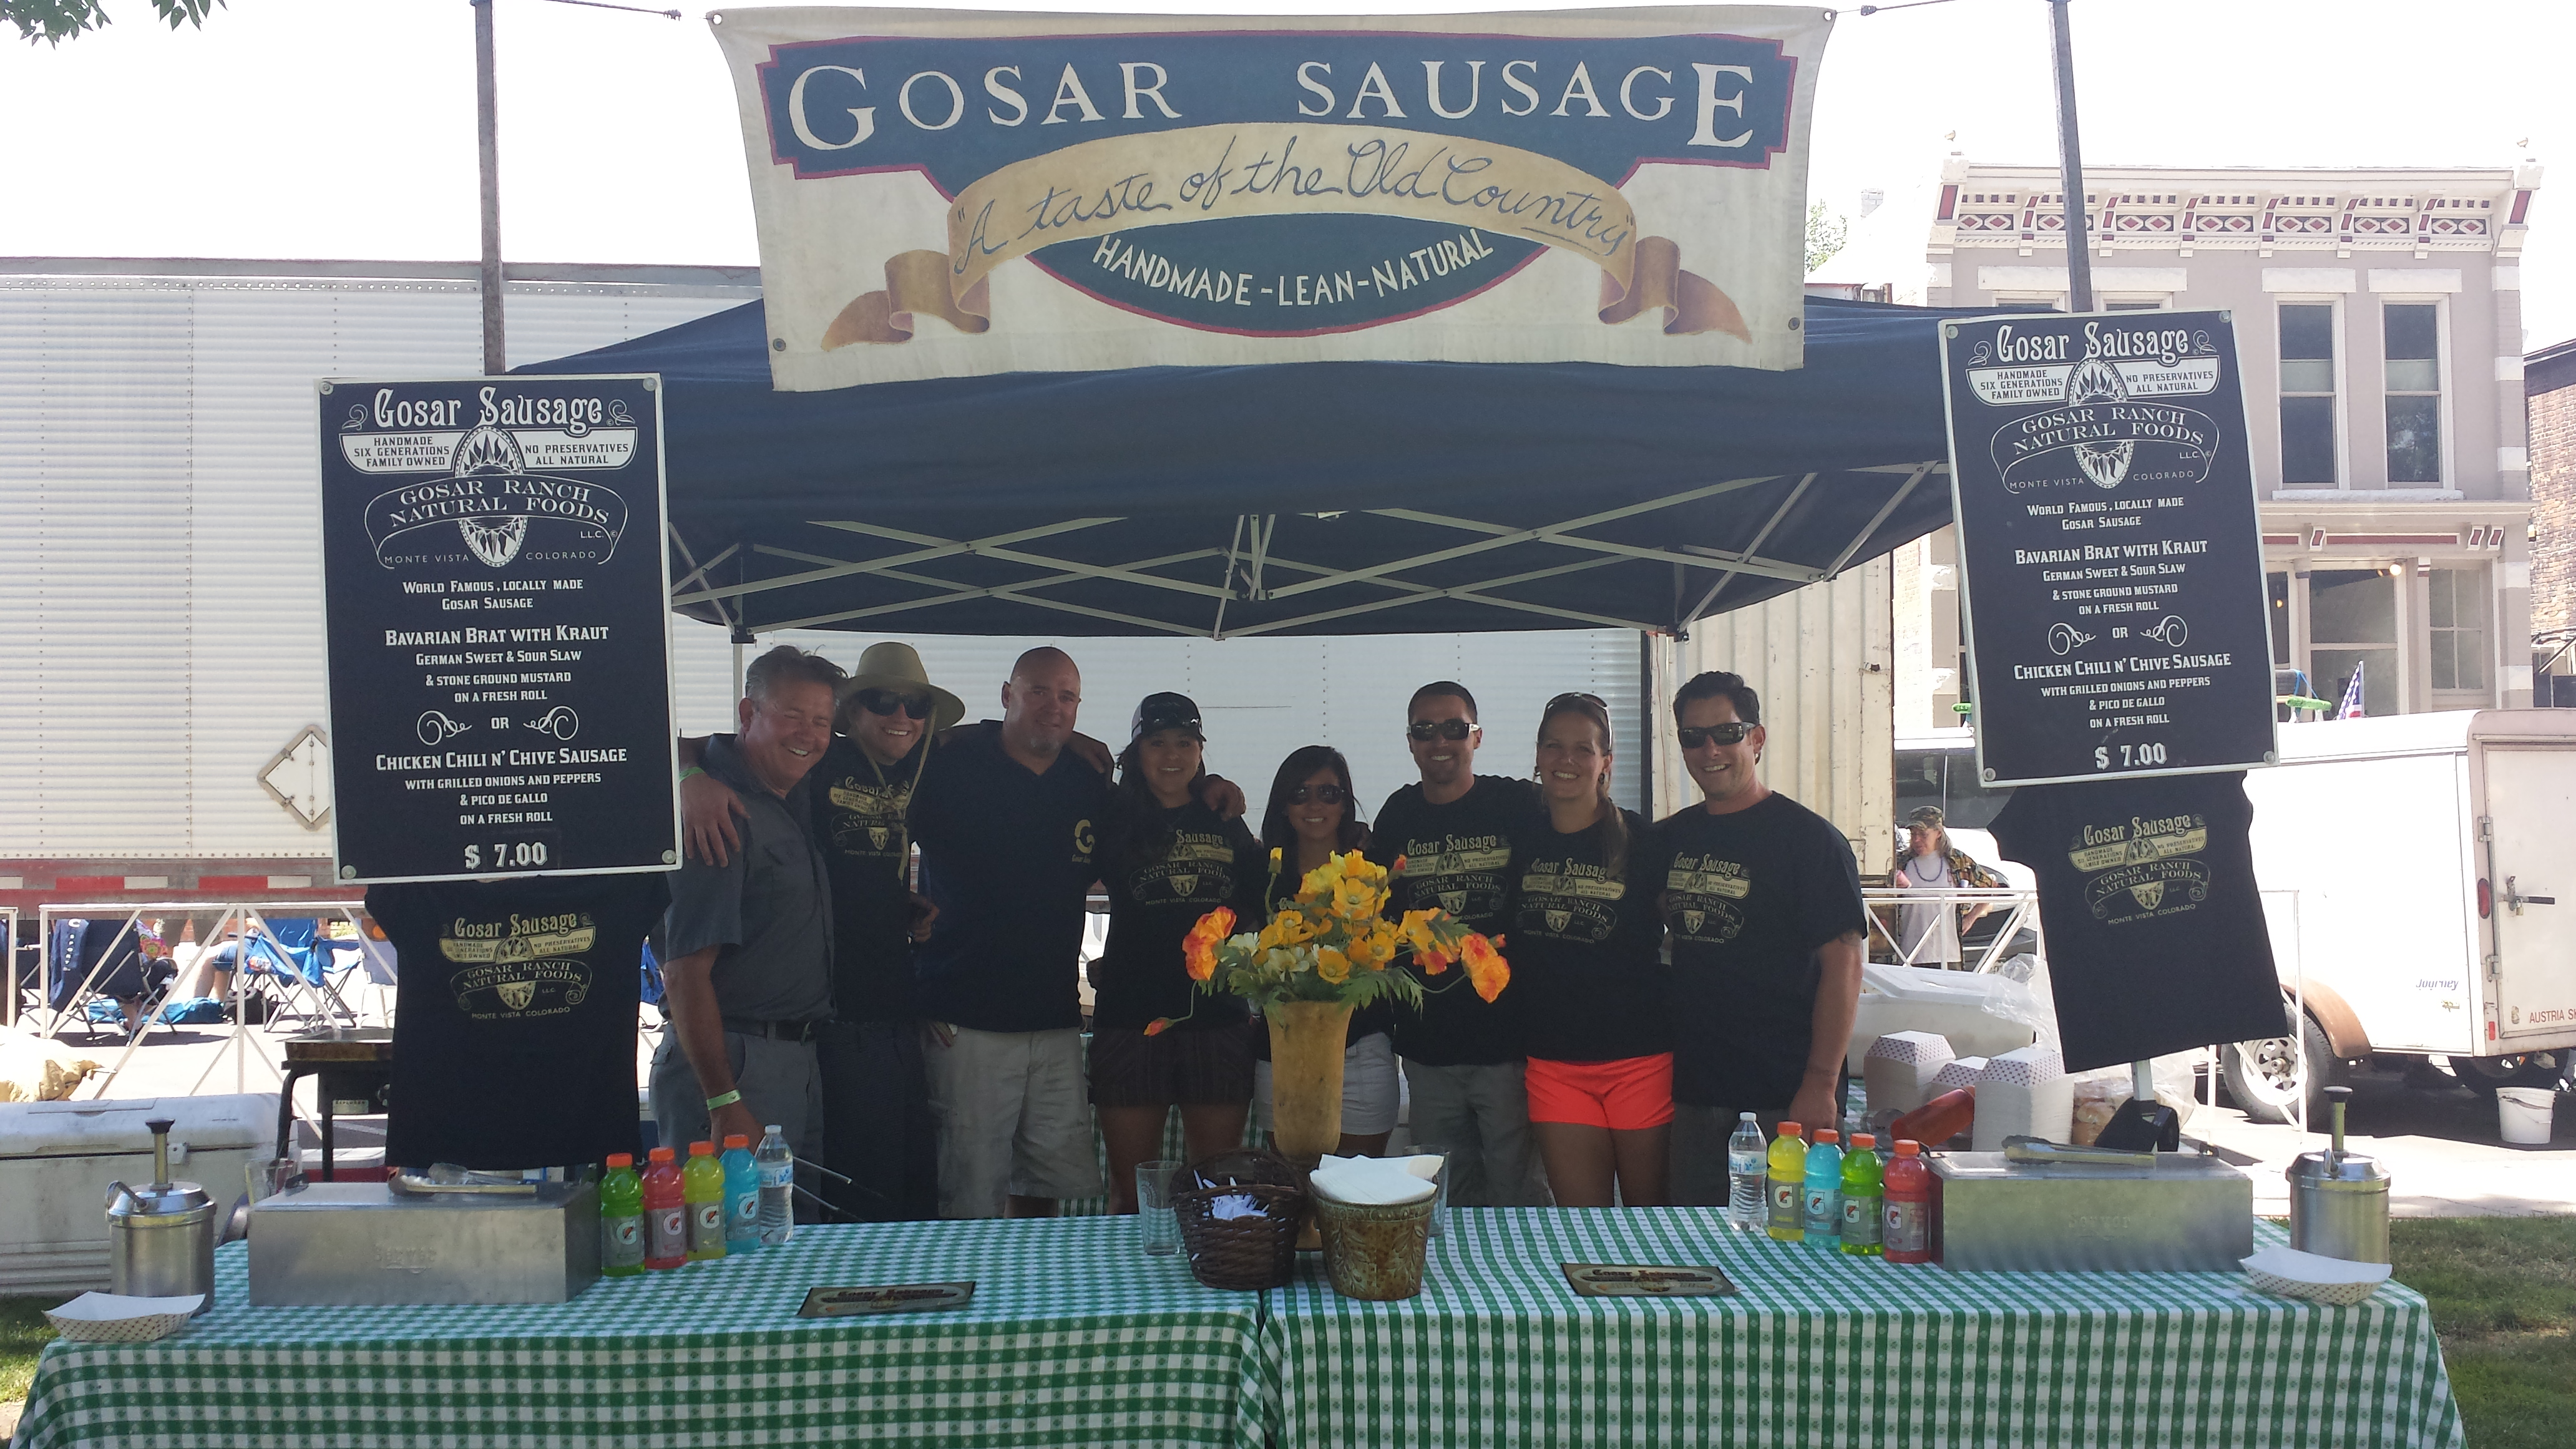 Gosar Ranch Natural Foods